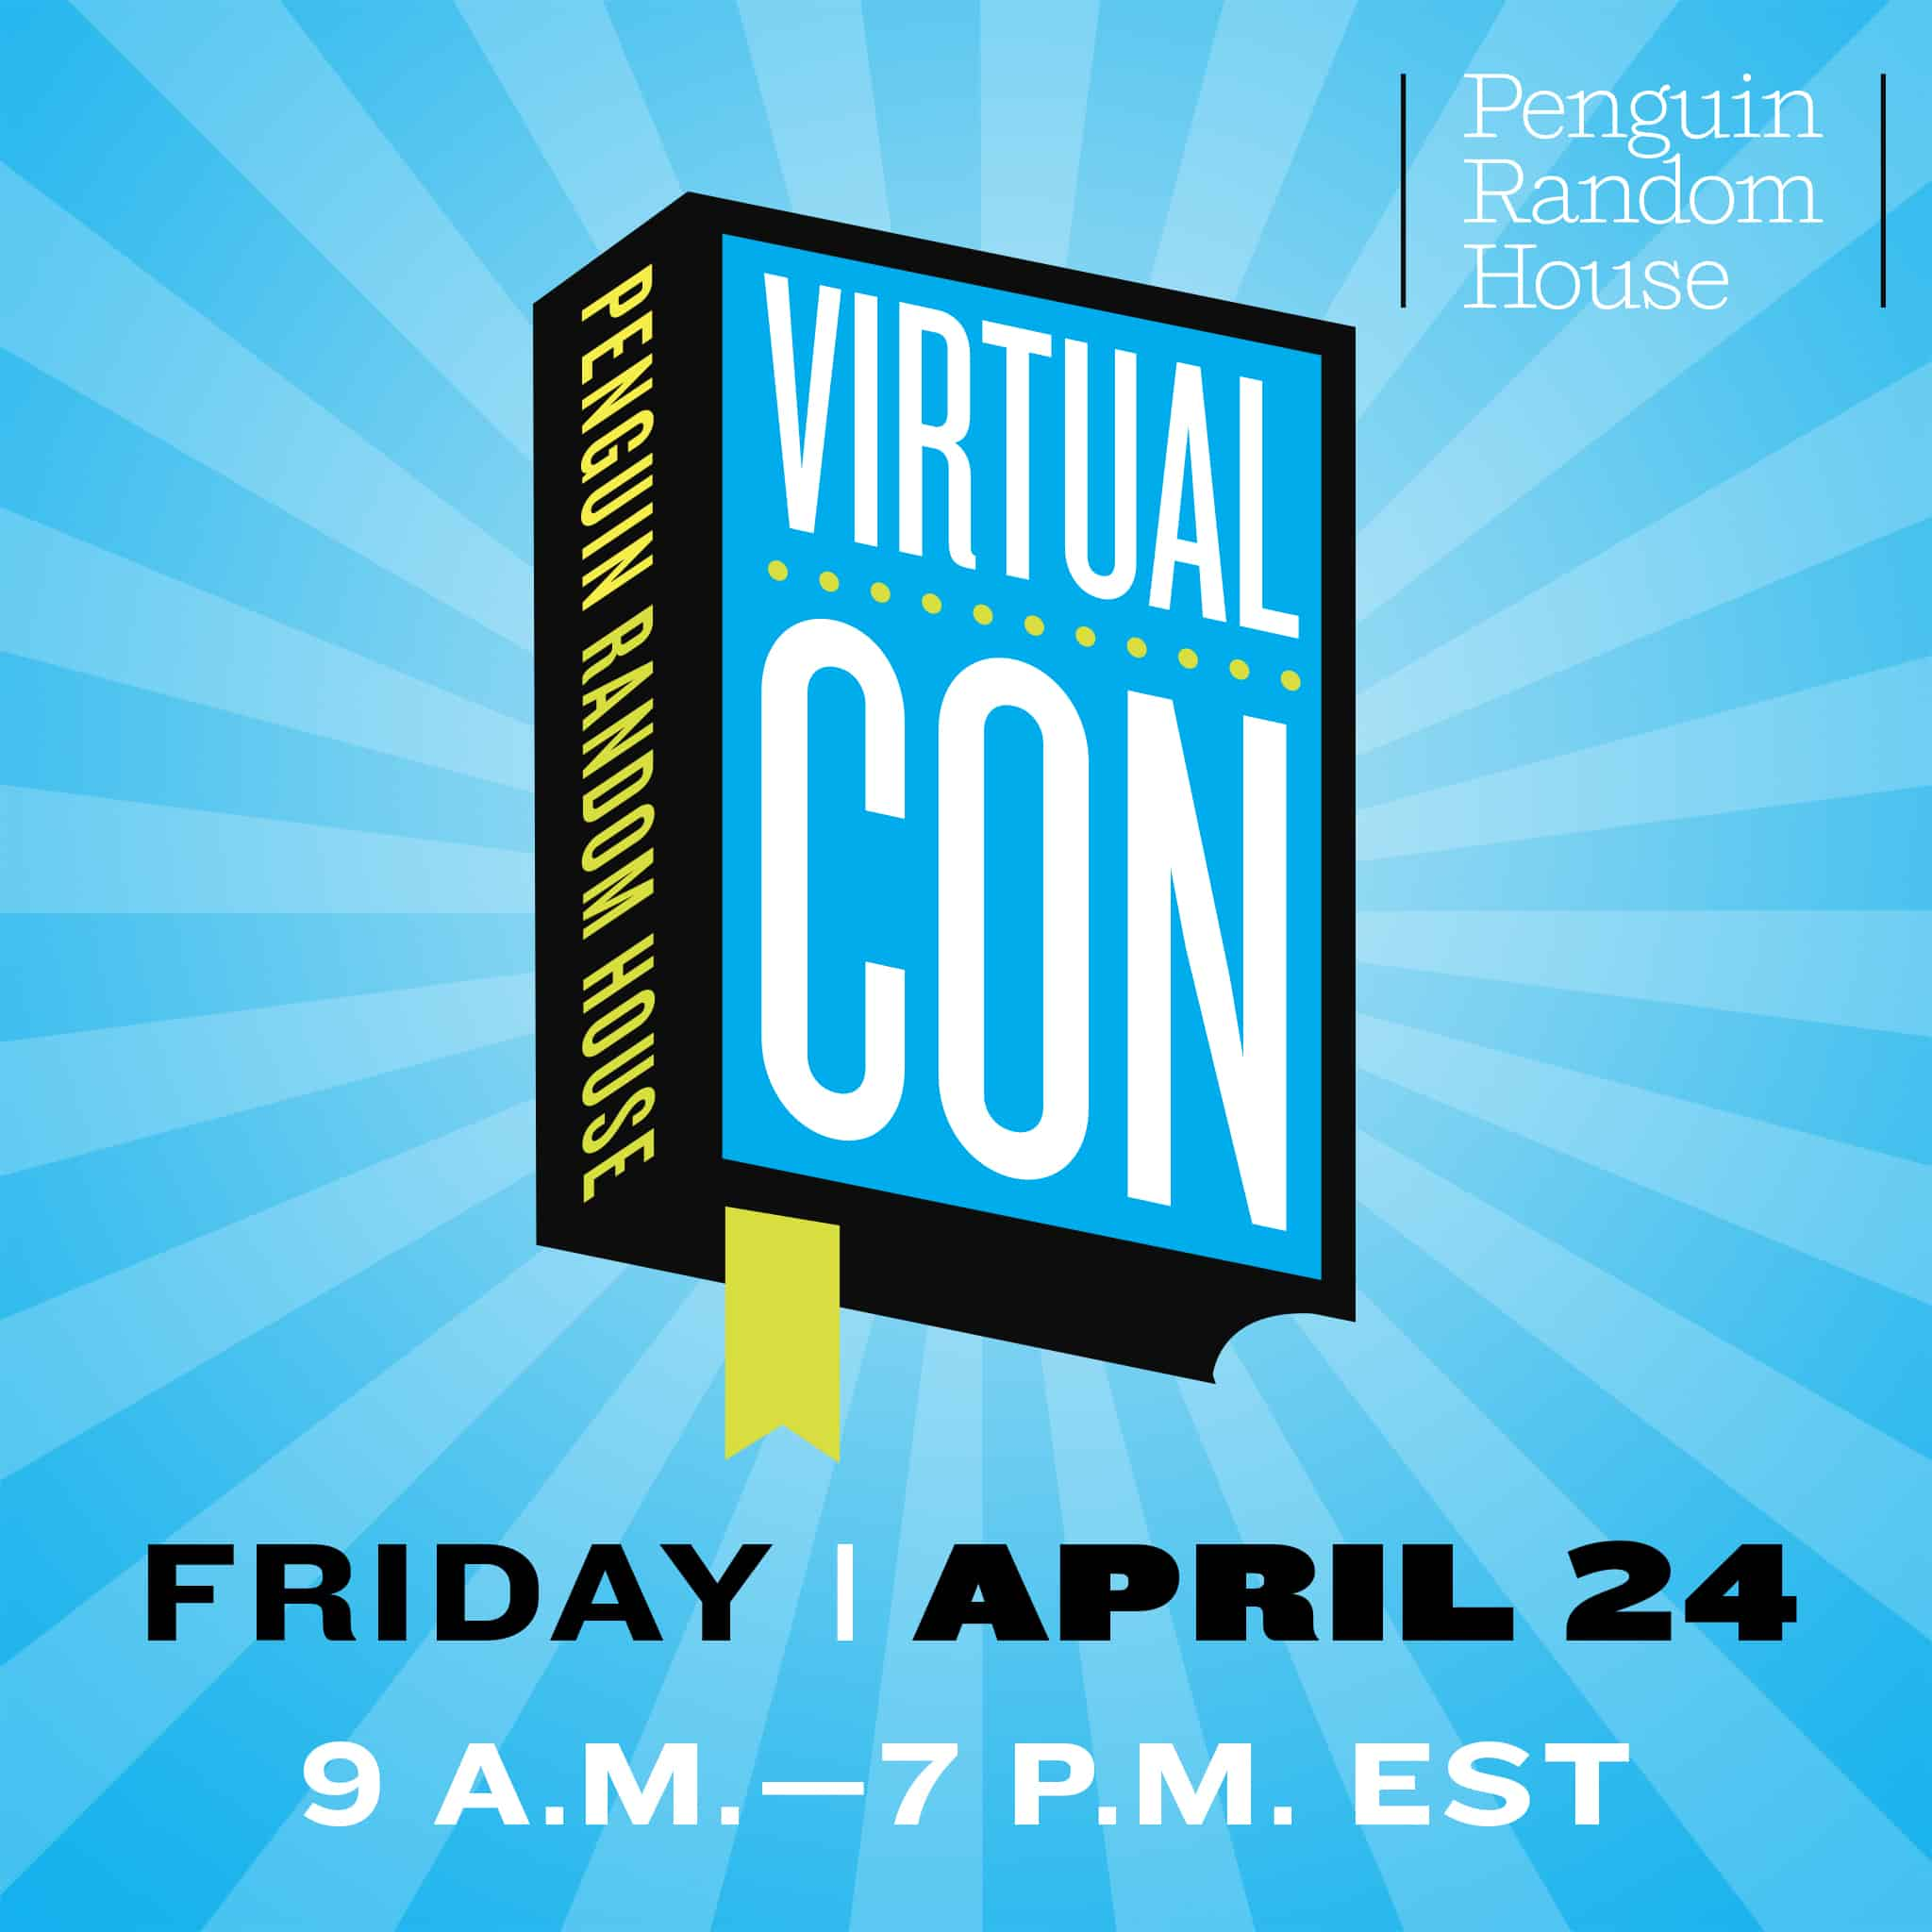 Terry Joining PRH Virtual Con